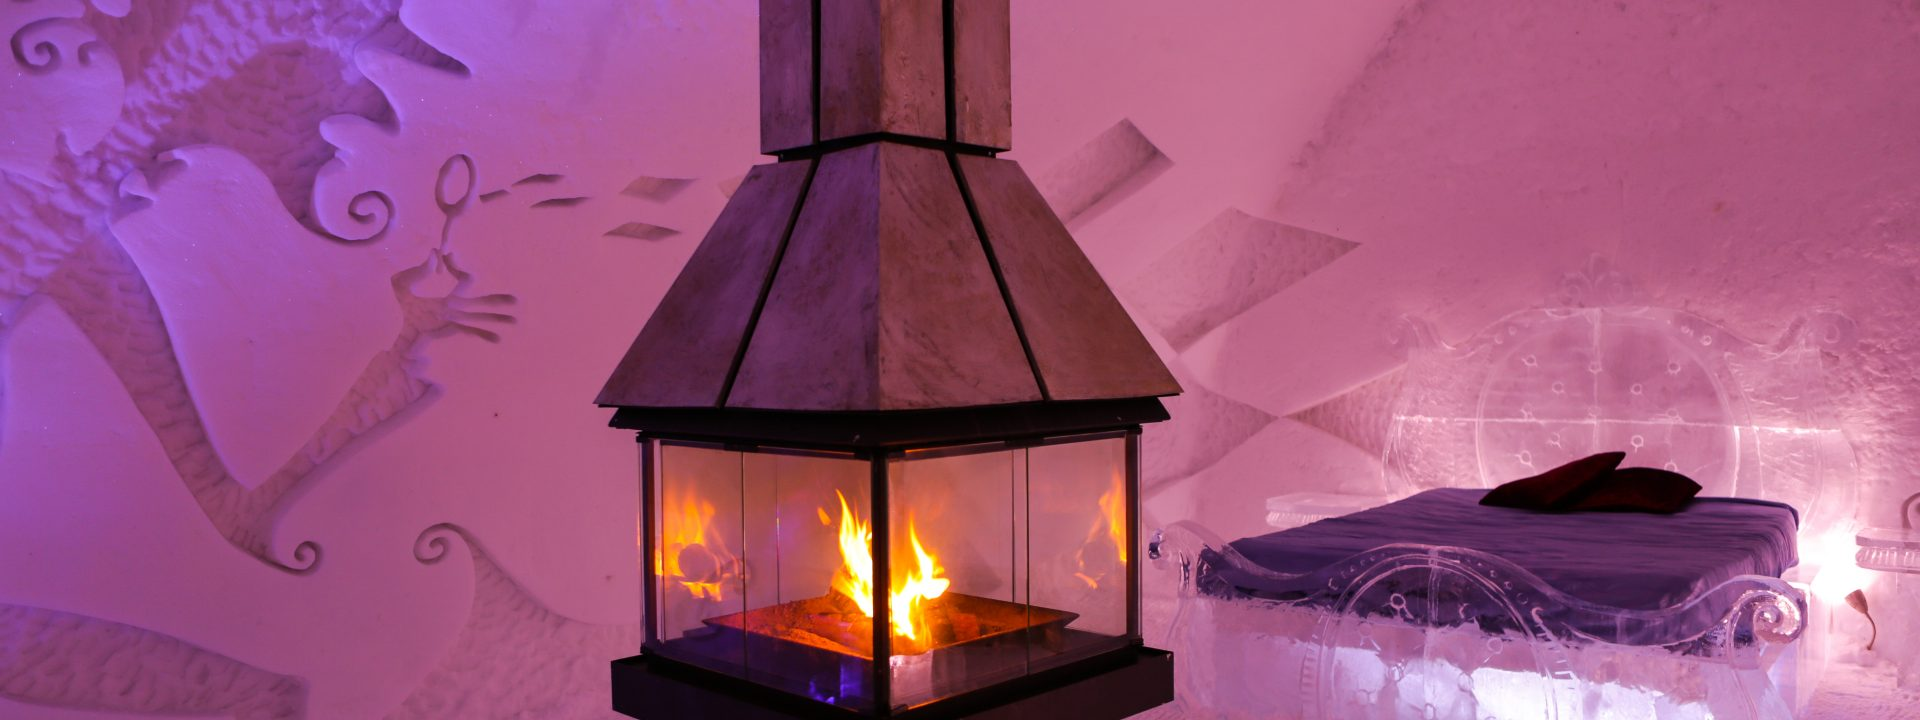 The Quebec Ice Hotel sparkles again